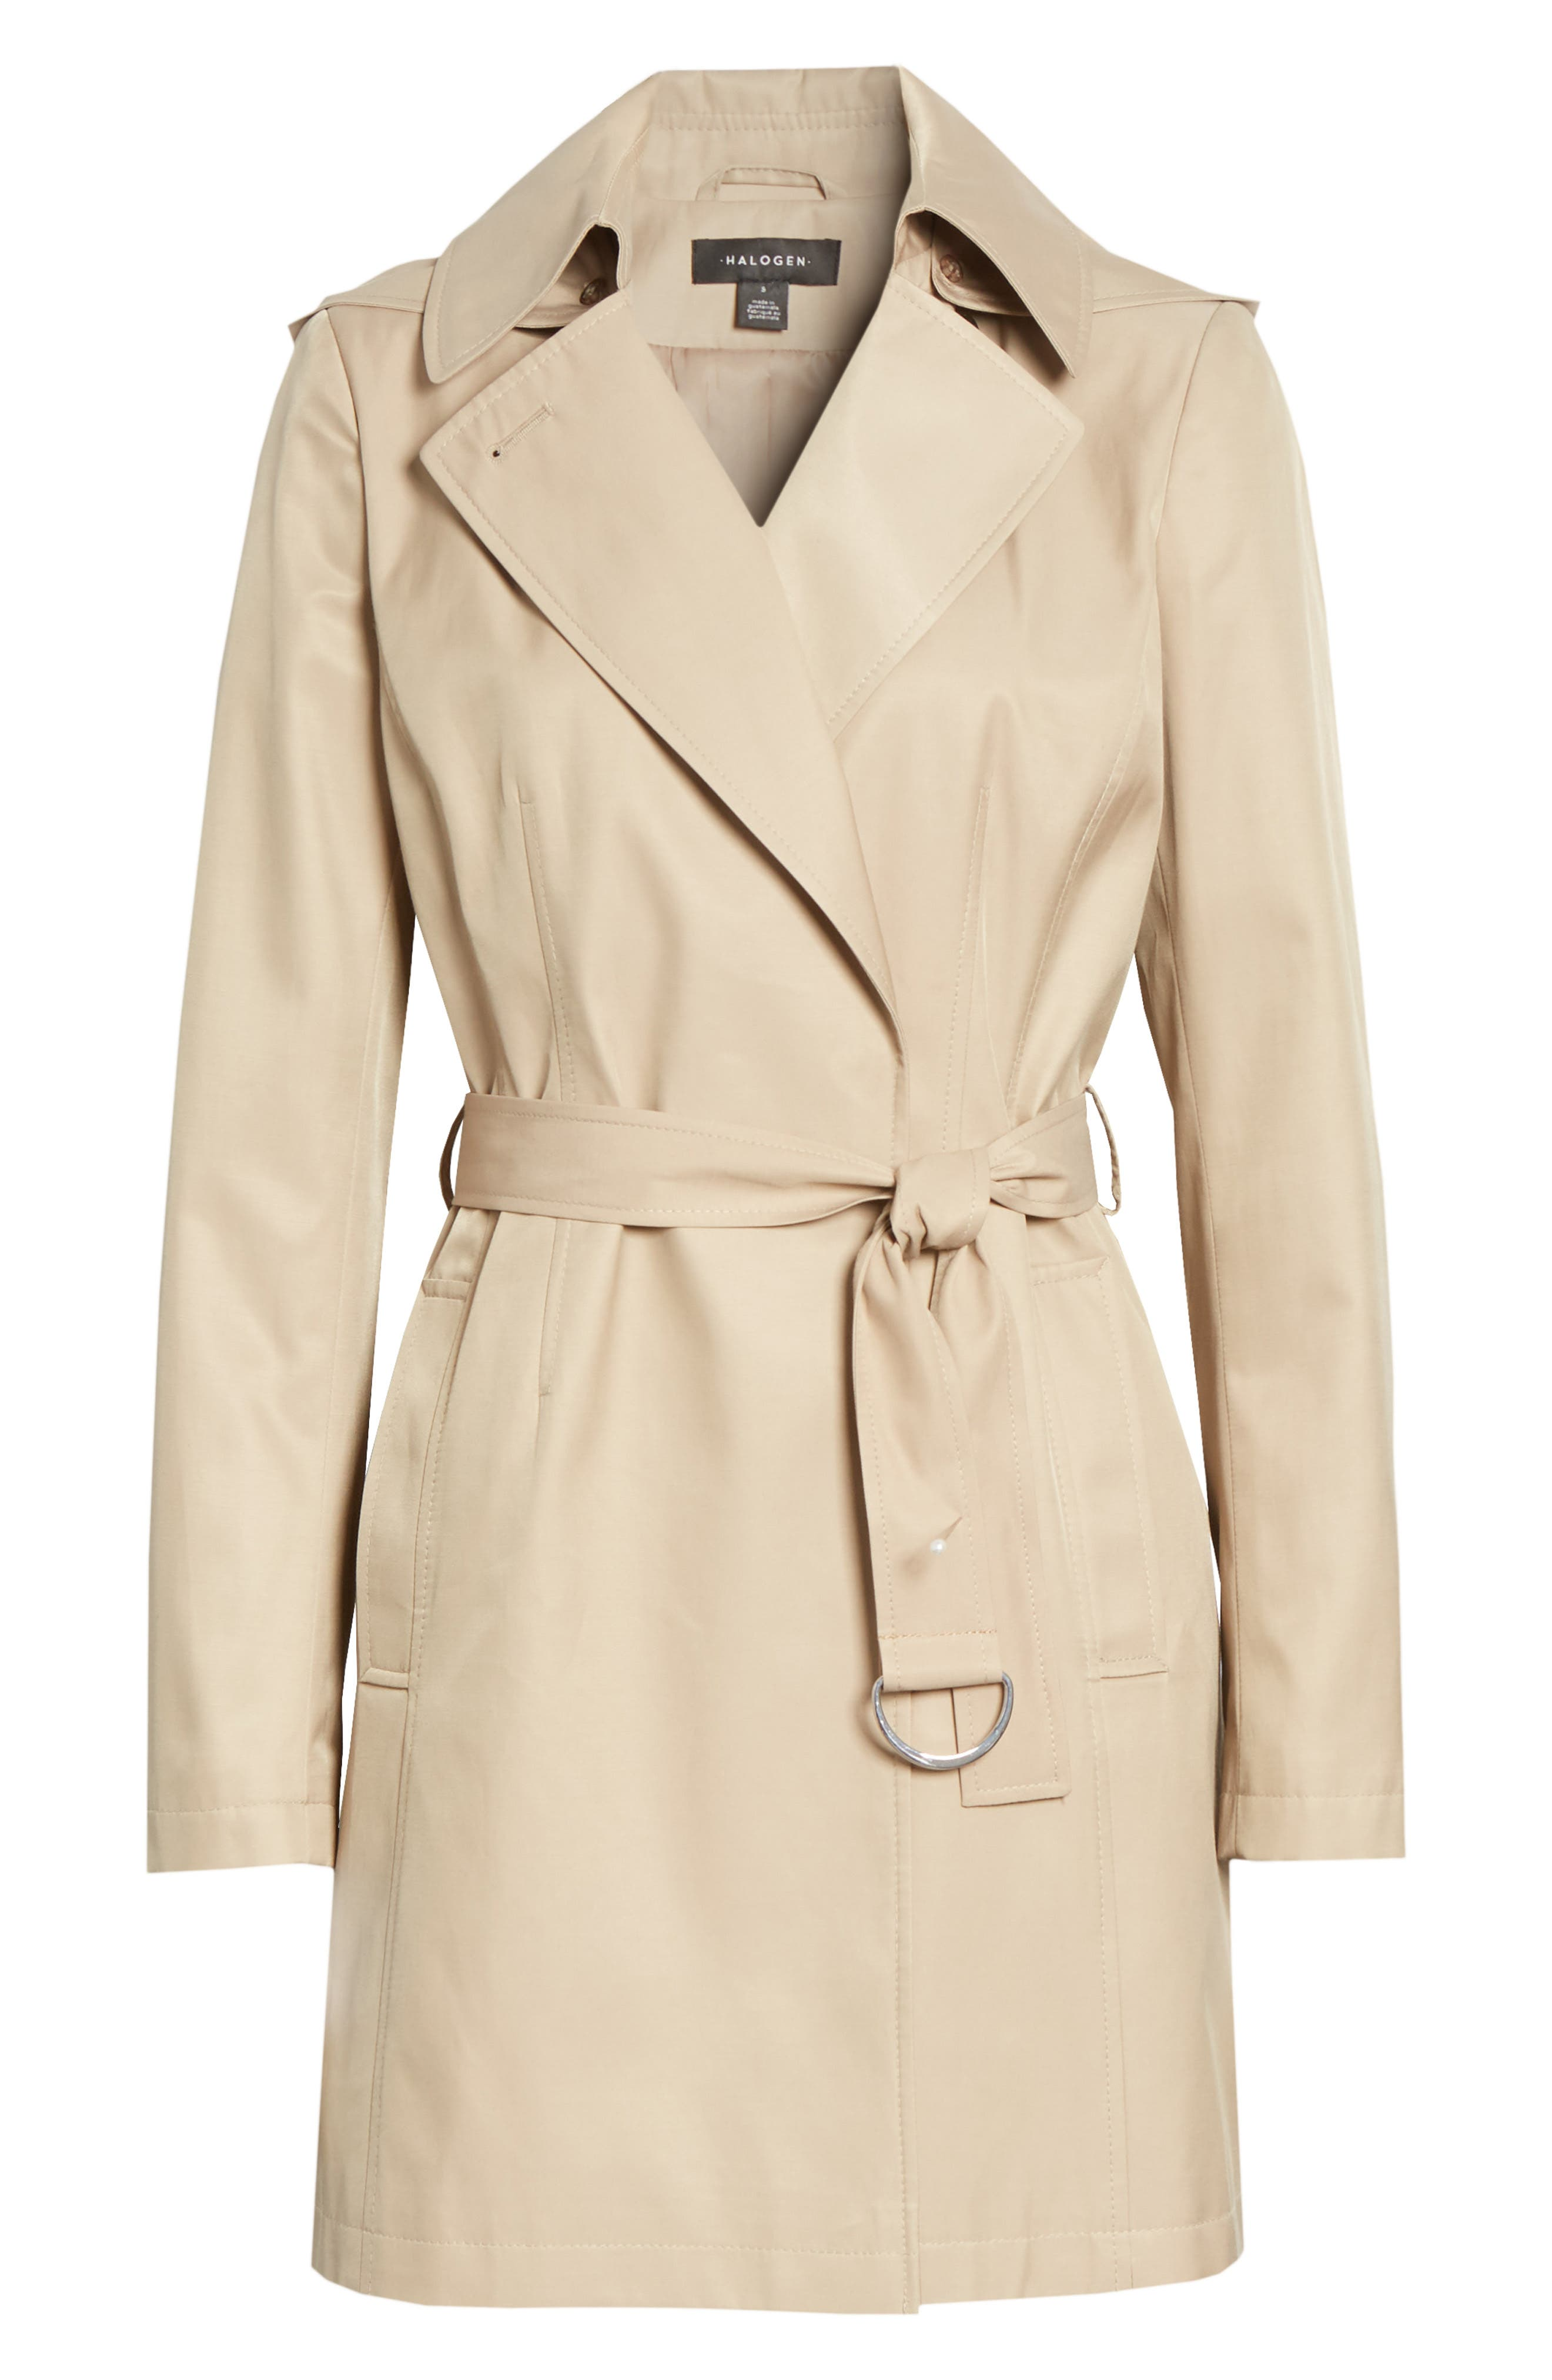 Shop HalogenR Womens Trench Coats on DailyMail